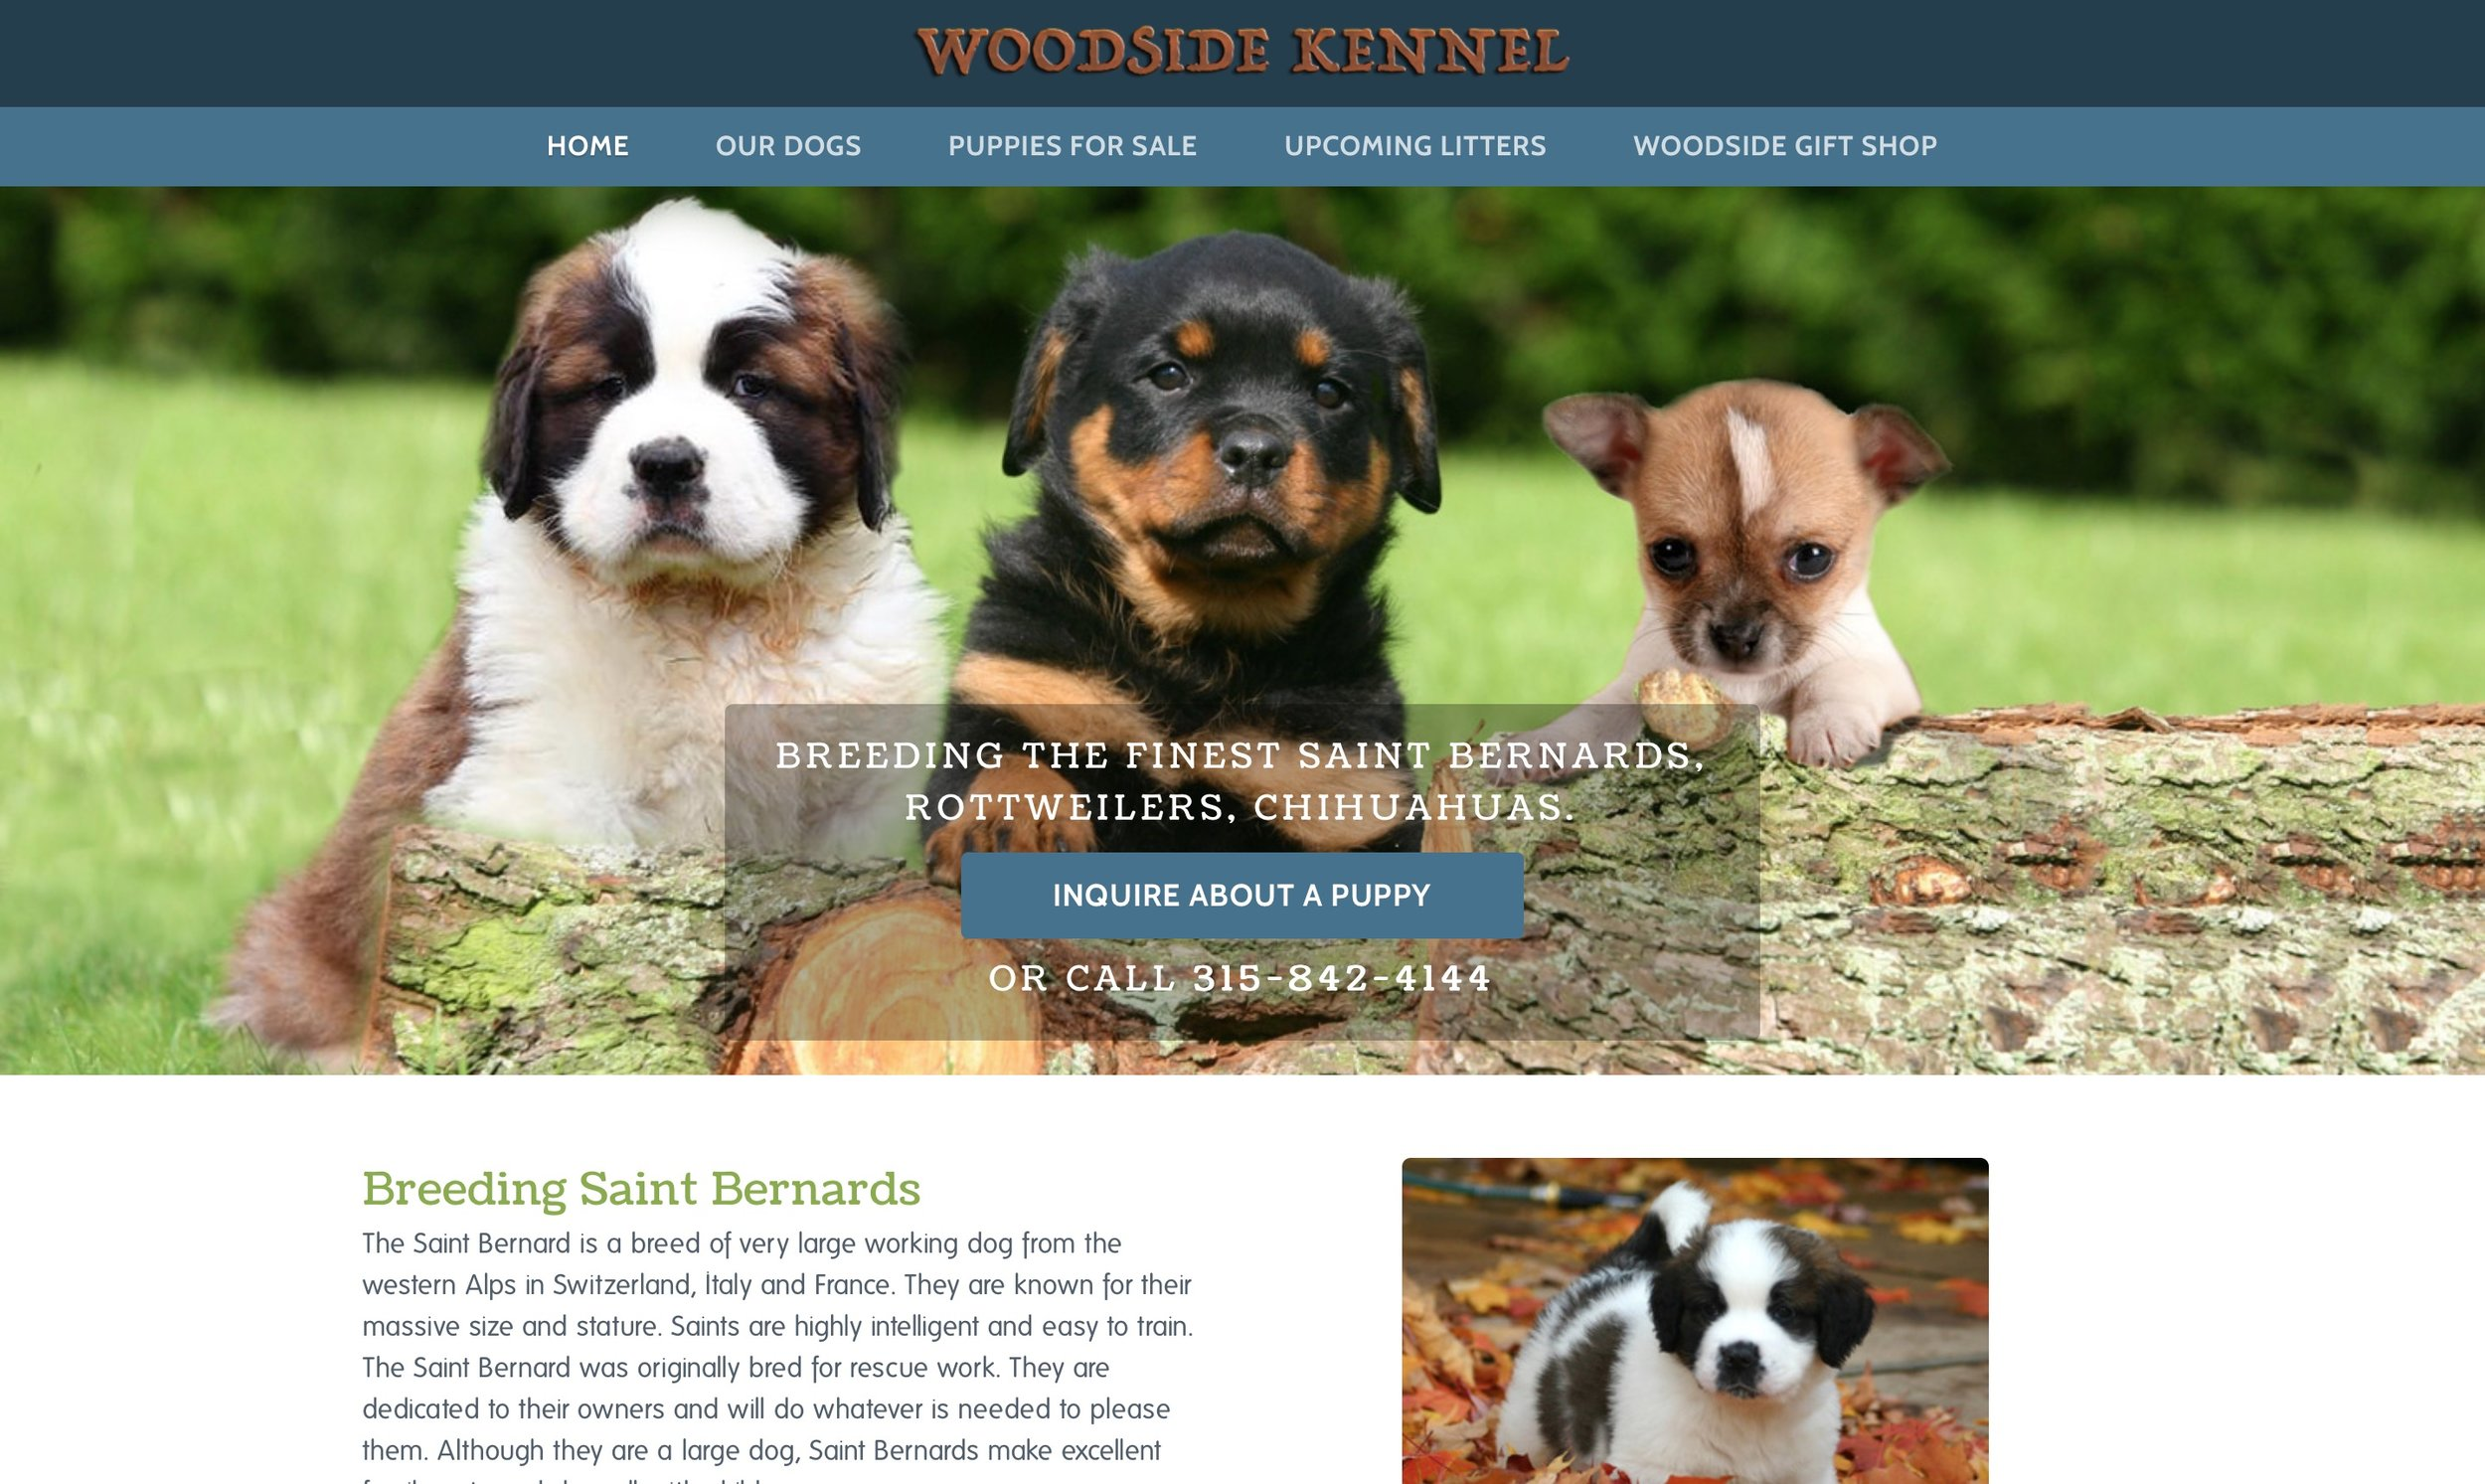 Woodside Kennel